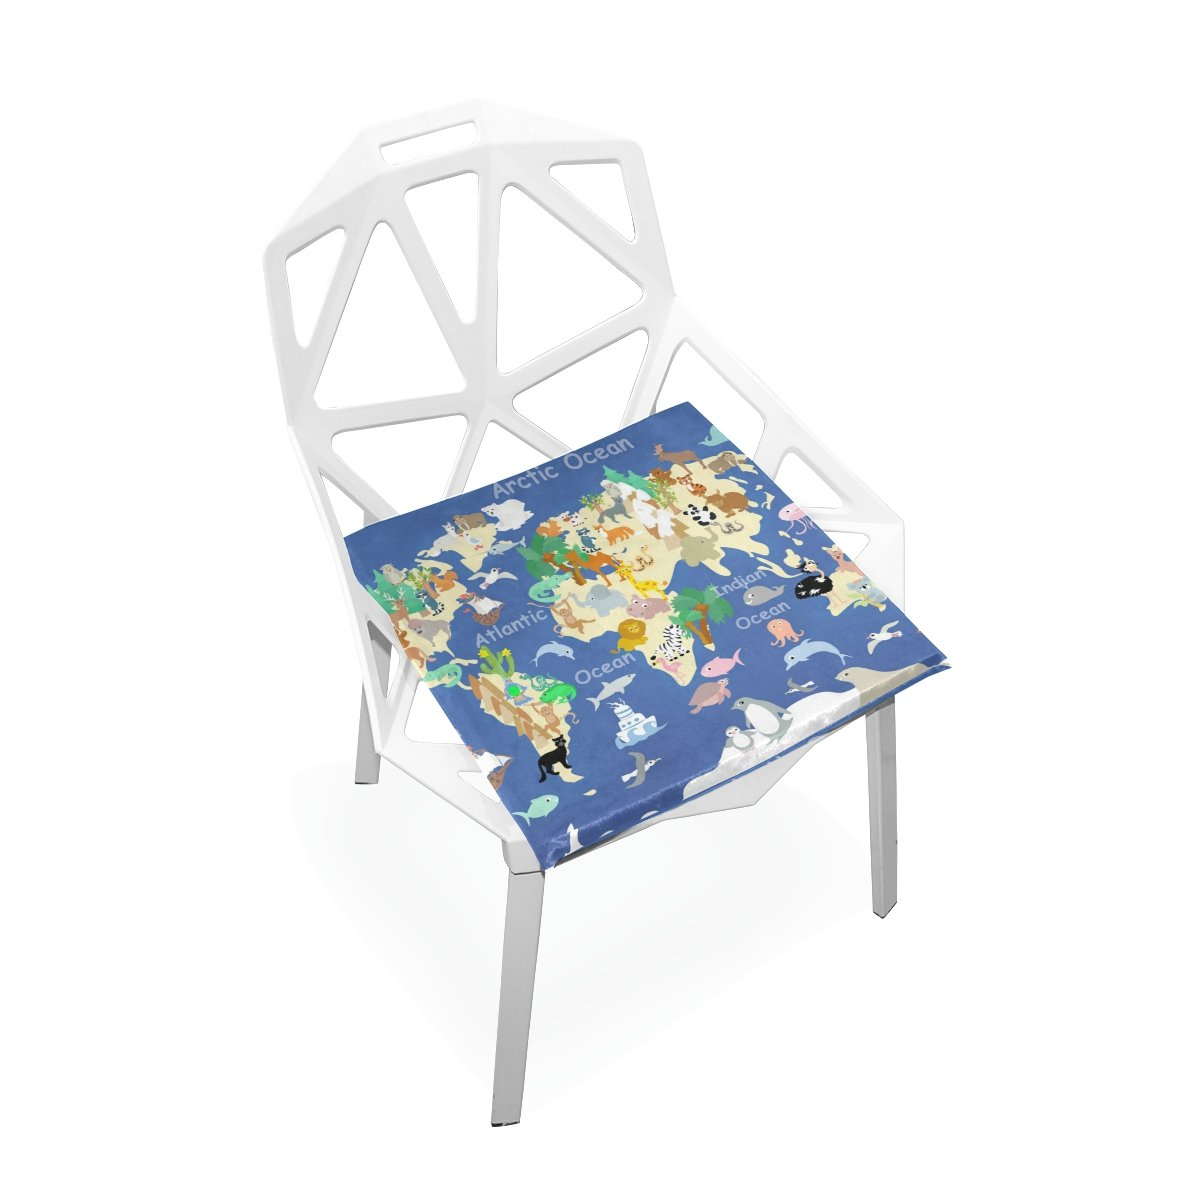 PLAO Chair Pads Flat World Animals Soft Seat Cushions Nonslip Chair Mats for Dining, Patio, Camping, Kitchen Chairs, Home Decor